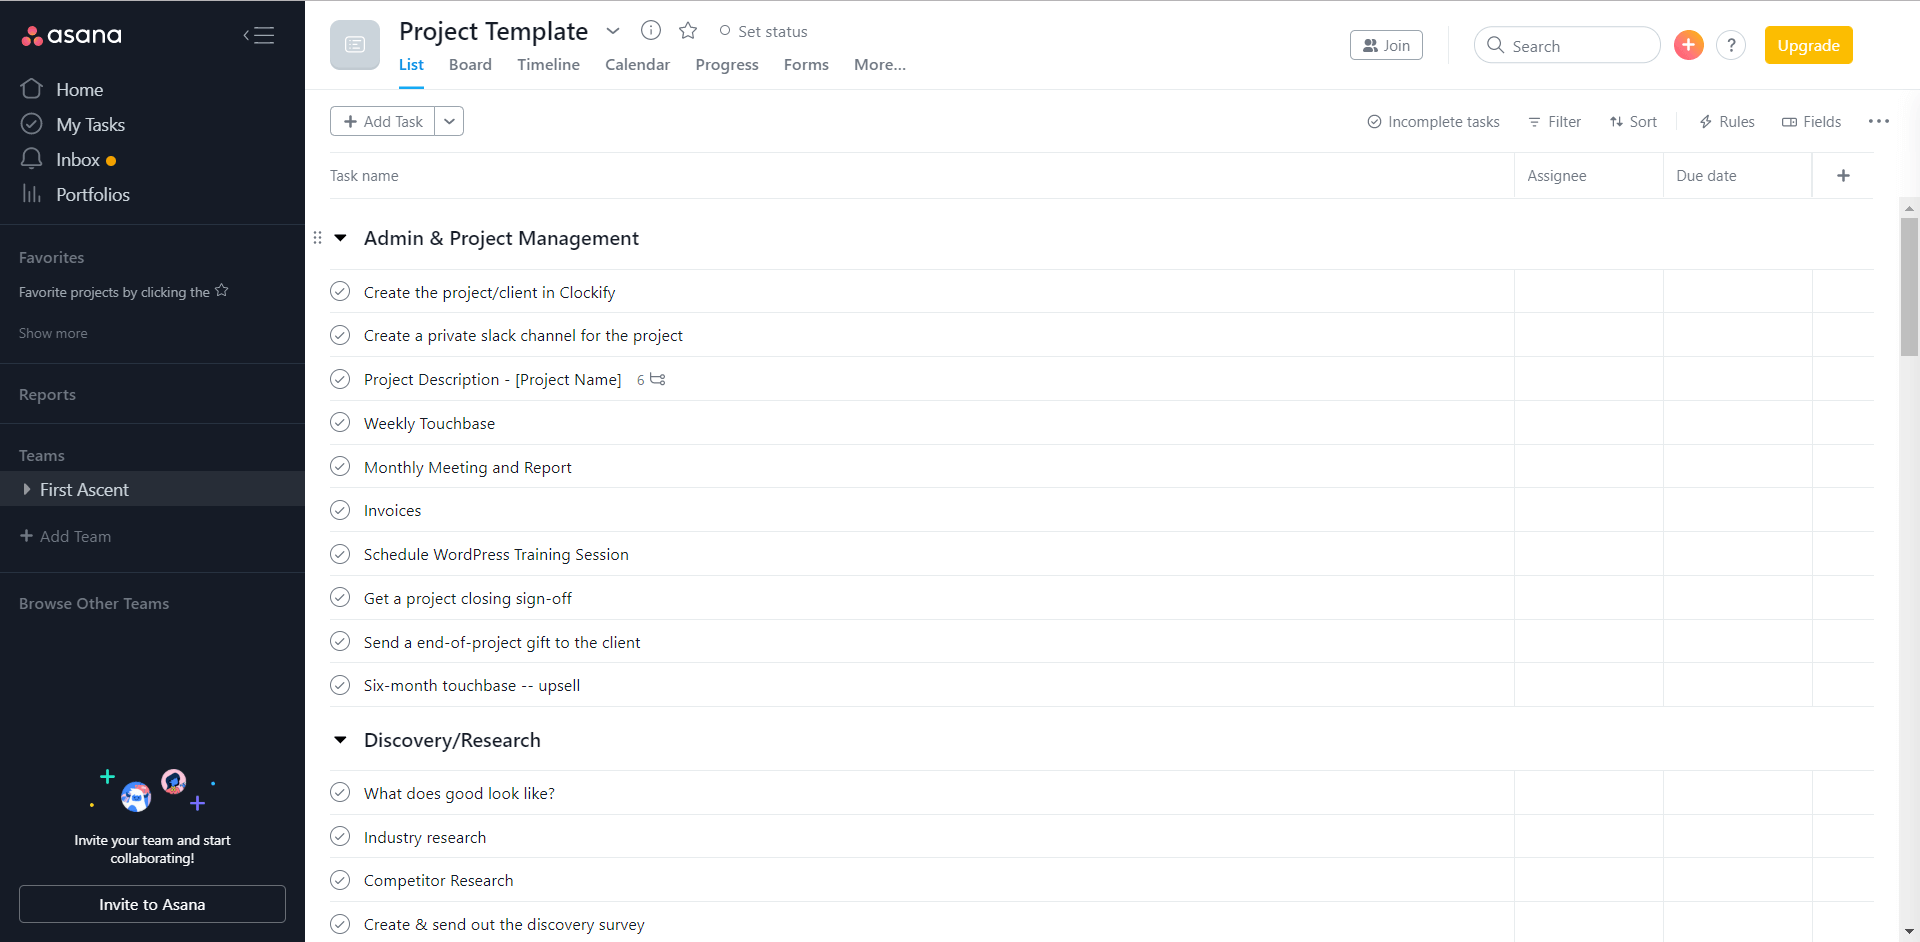 Image of a project template in Asana. Various tasks and project groups are listed from top to bottom.